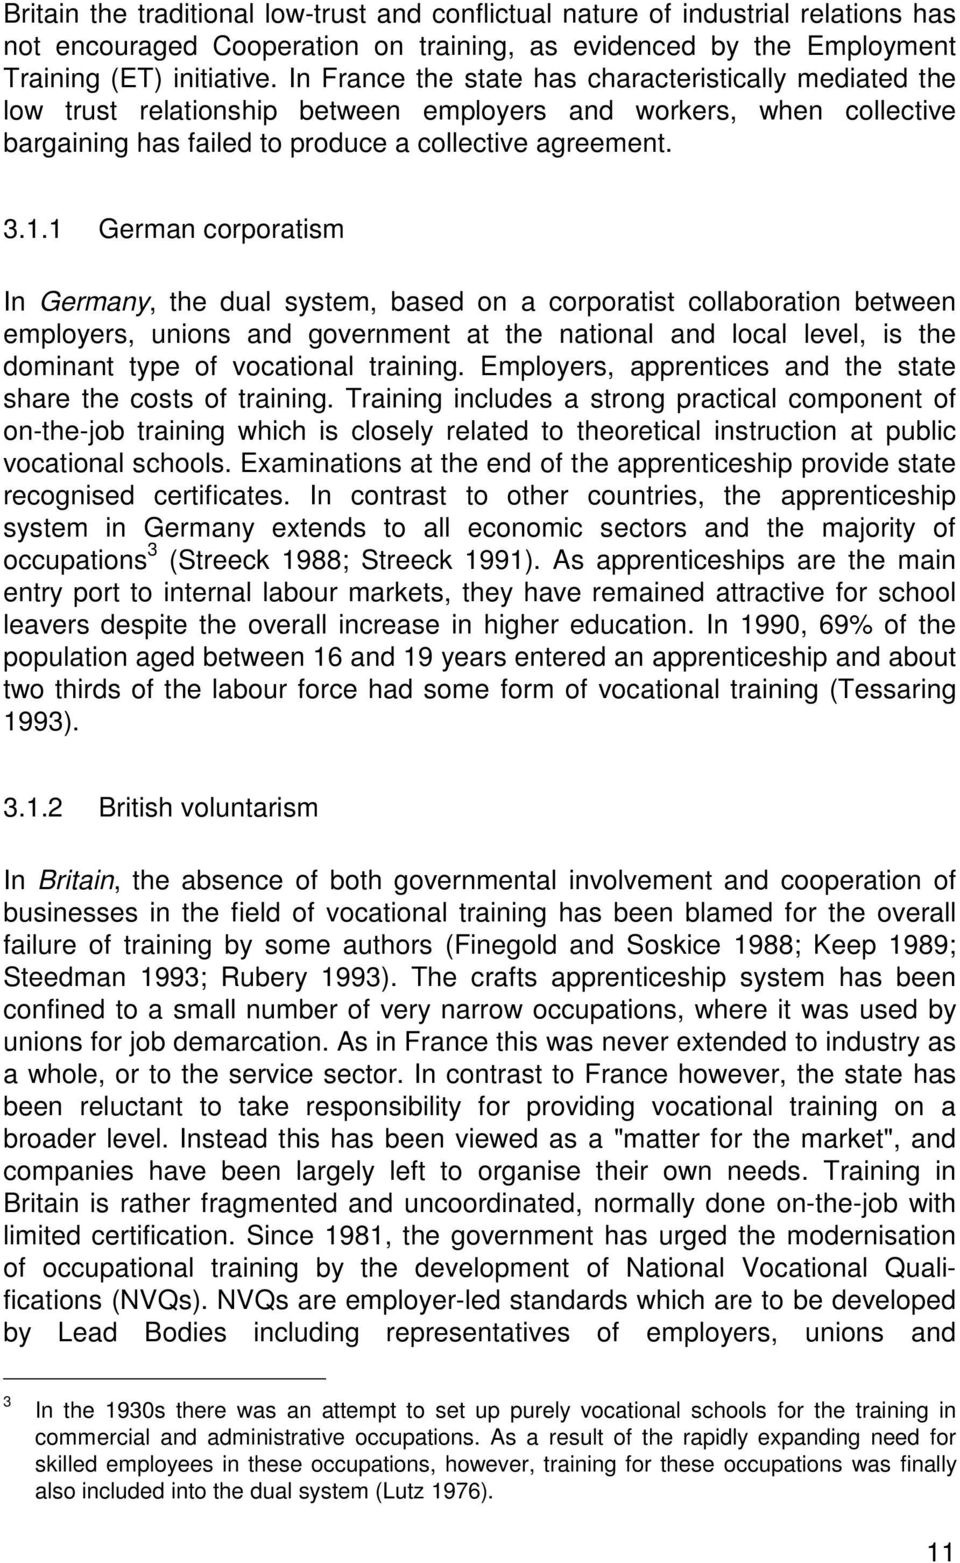 1 German corporatism In Germany, the dual system, based on a corporatist collaboration between employers, unions and government at the national and local level, is the dominant type of vocational